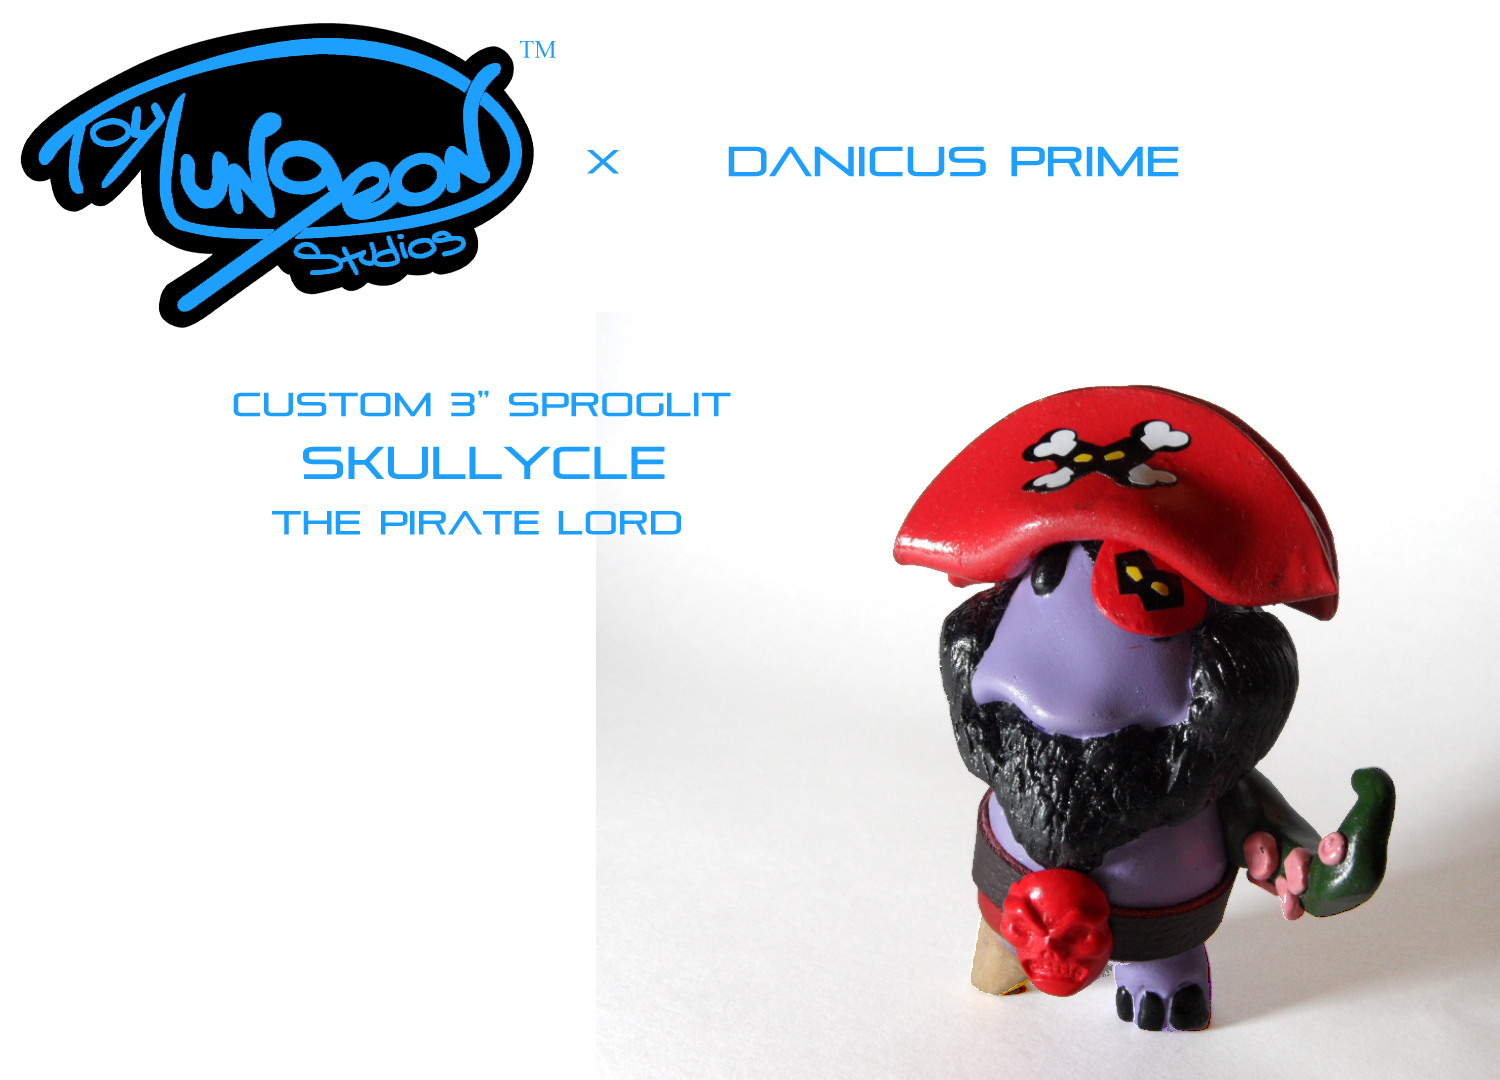 Skullycle: The Pirate Lord of the 7 Black Seas!